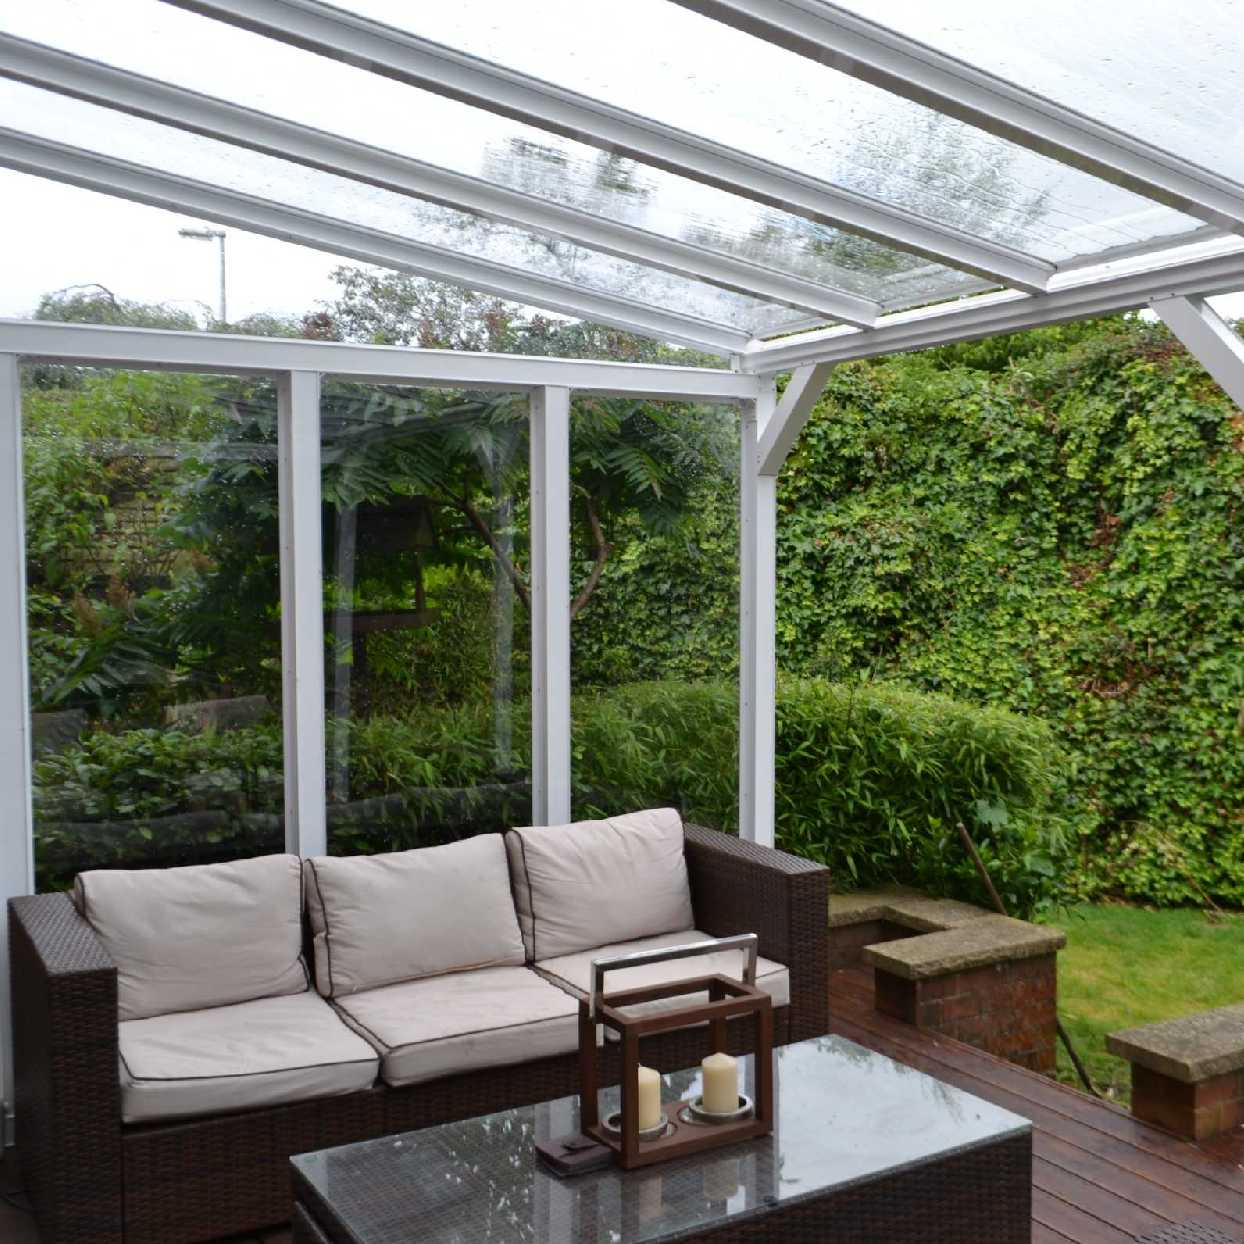 Great selection of Omega Smart White Lean-To Canopy with 16mm Polycarbonate Glazing - 7.4m (W) x 1.5m (P), (4) Supporting Posts